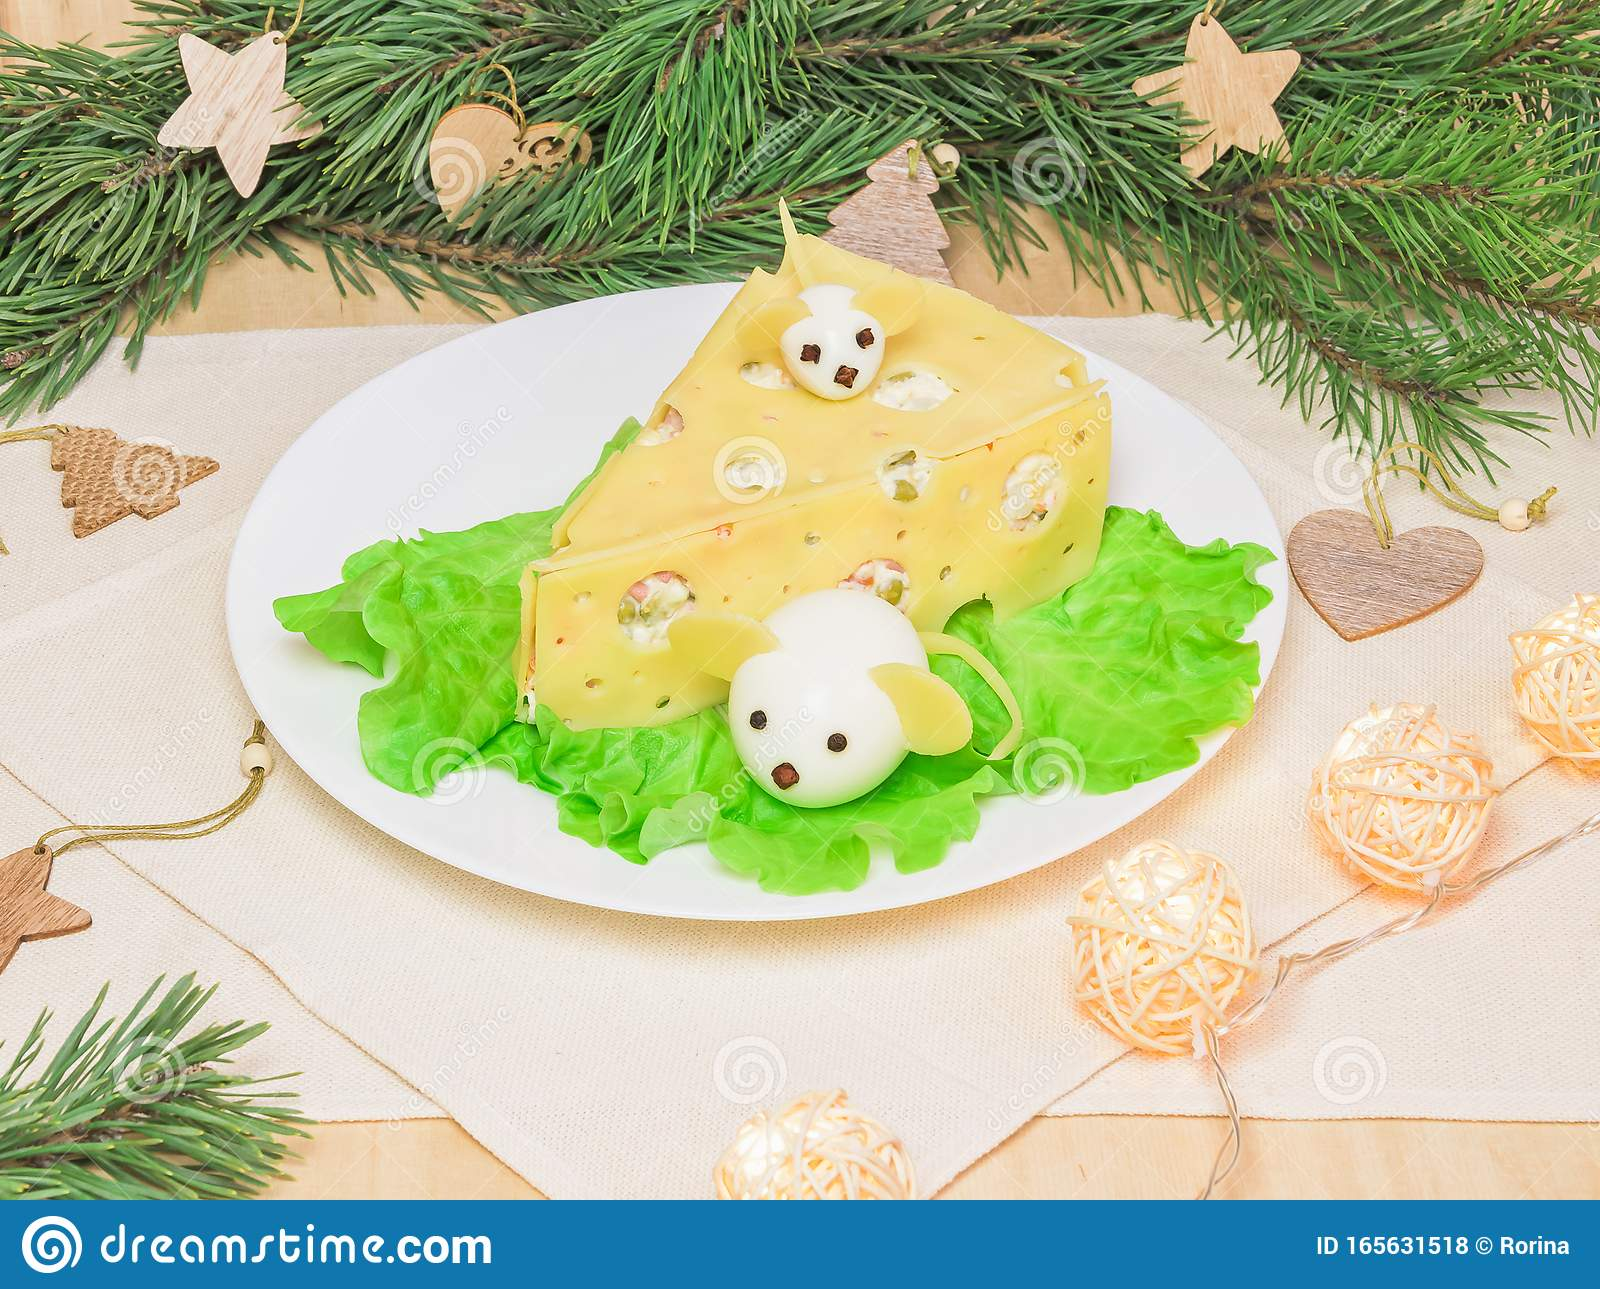 Holiday Christmas Salad Mouse 2020 New Year Cheese Piece Shape